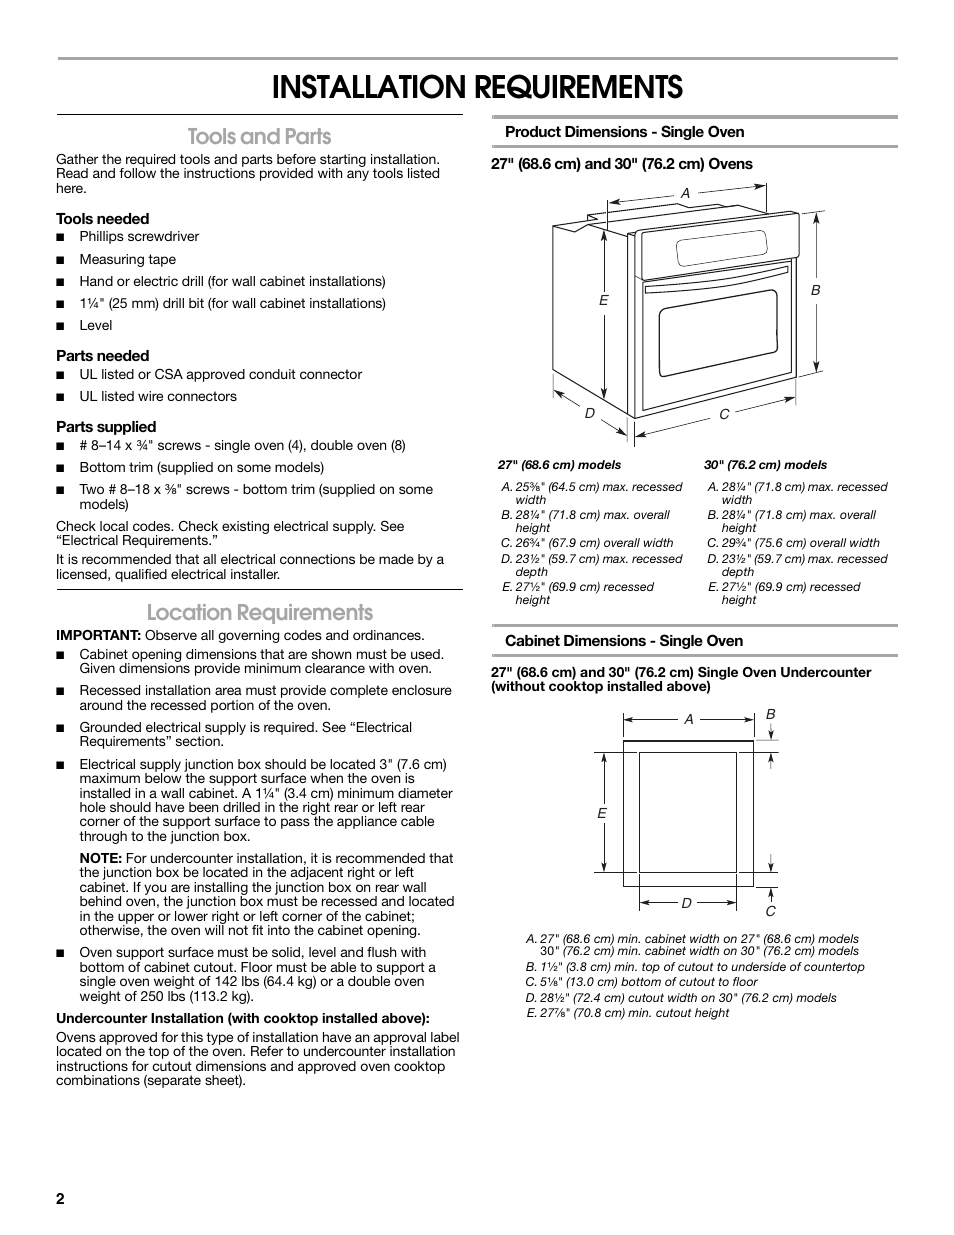 Installation Requirements Tools And Parts Location Maytag Double Oven Wiring Diagram Mew5530ddw Manuel Dutilisation Page 2 16